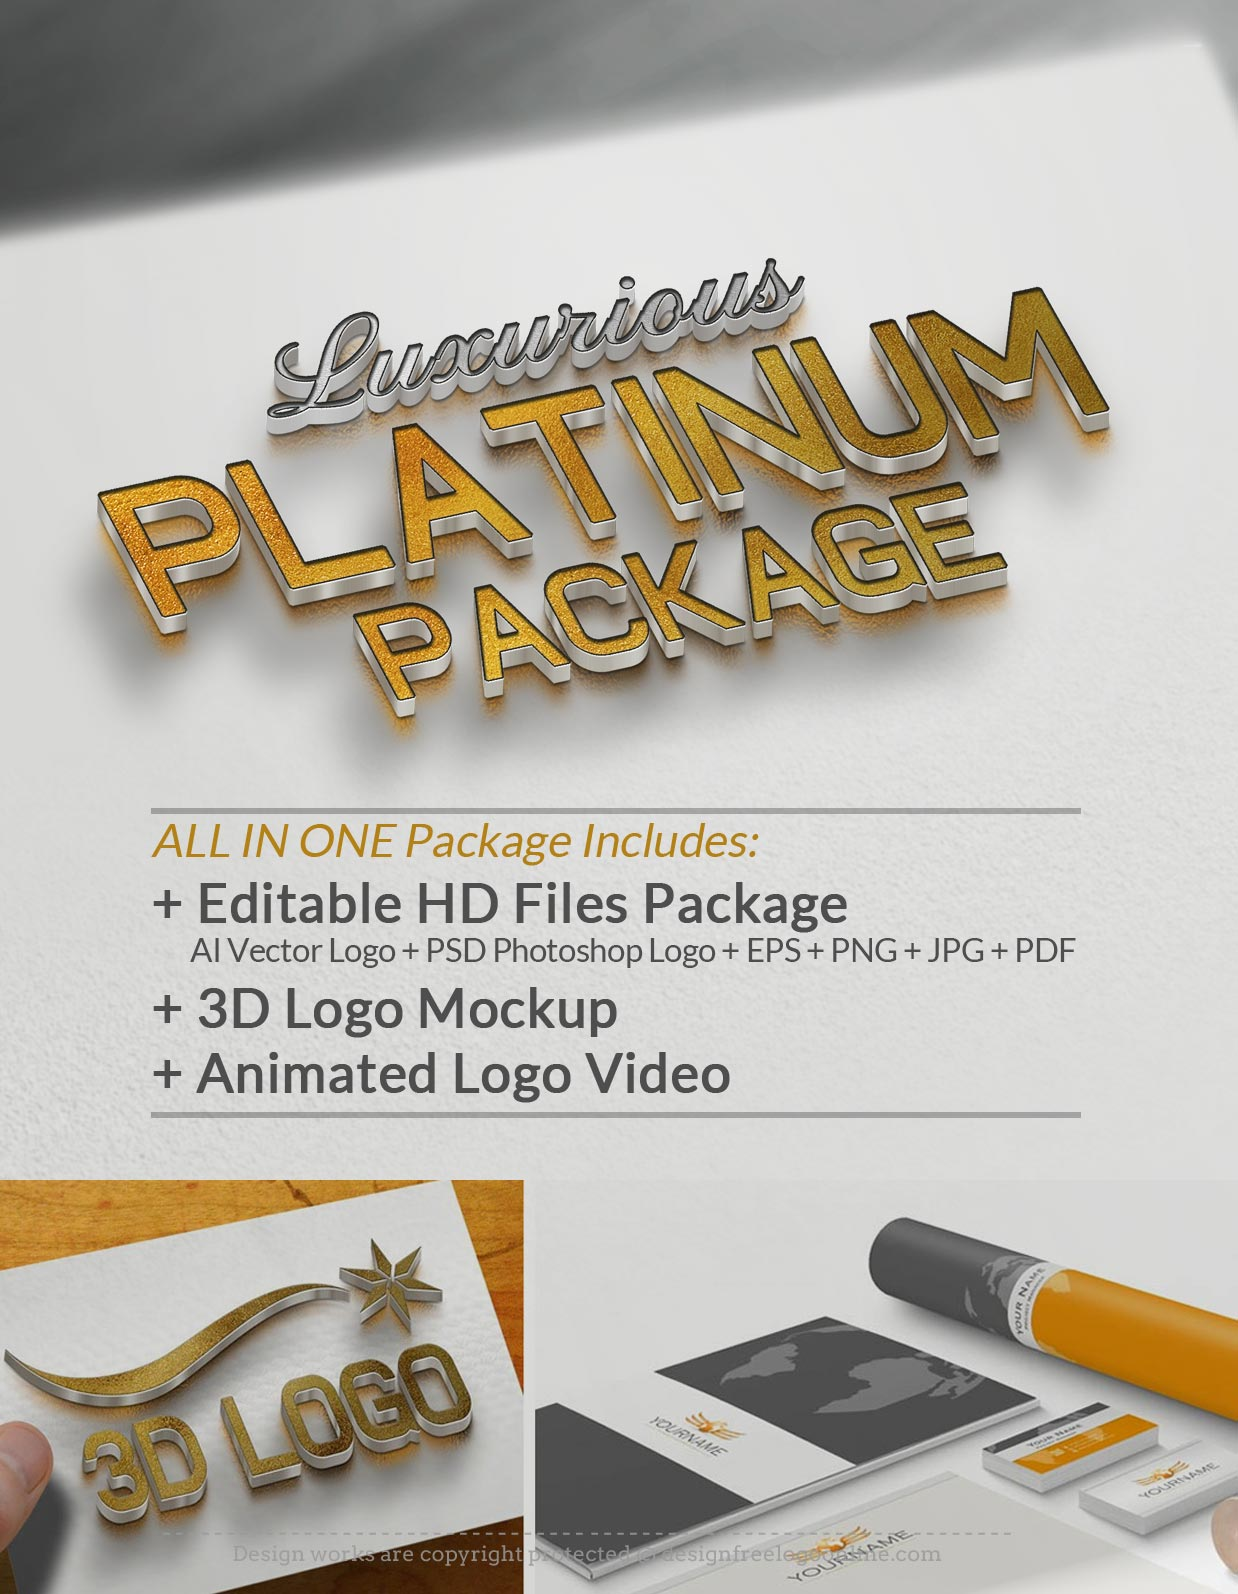 Upgrade Your Logo ALLINONE Luxurious Platinum Package